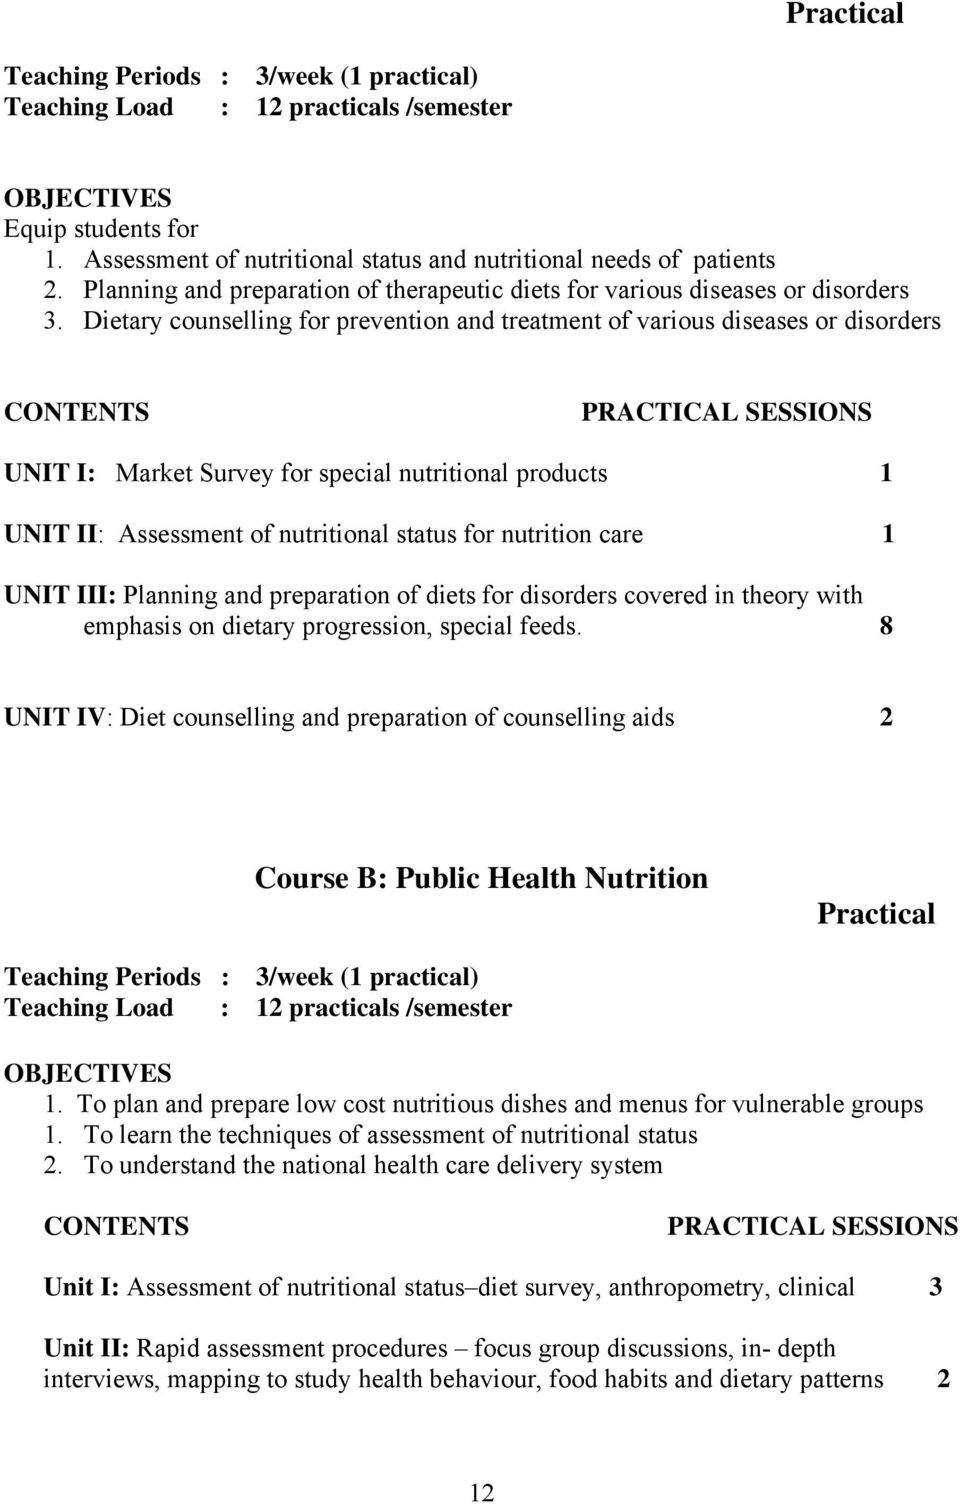 Dietary counselling for prevention and treatment of various diseases or disorders PRACTICAL SESSIONS UNIT I: Market Survey for special nutritional products 1 UNIT II: Assessment of nutritional status